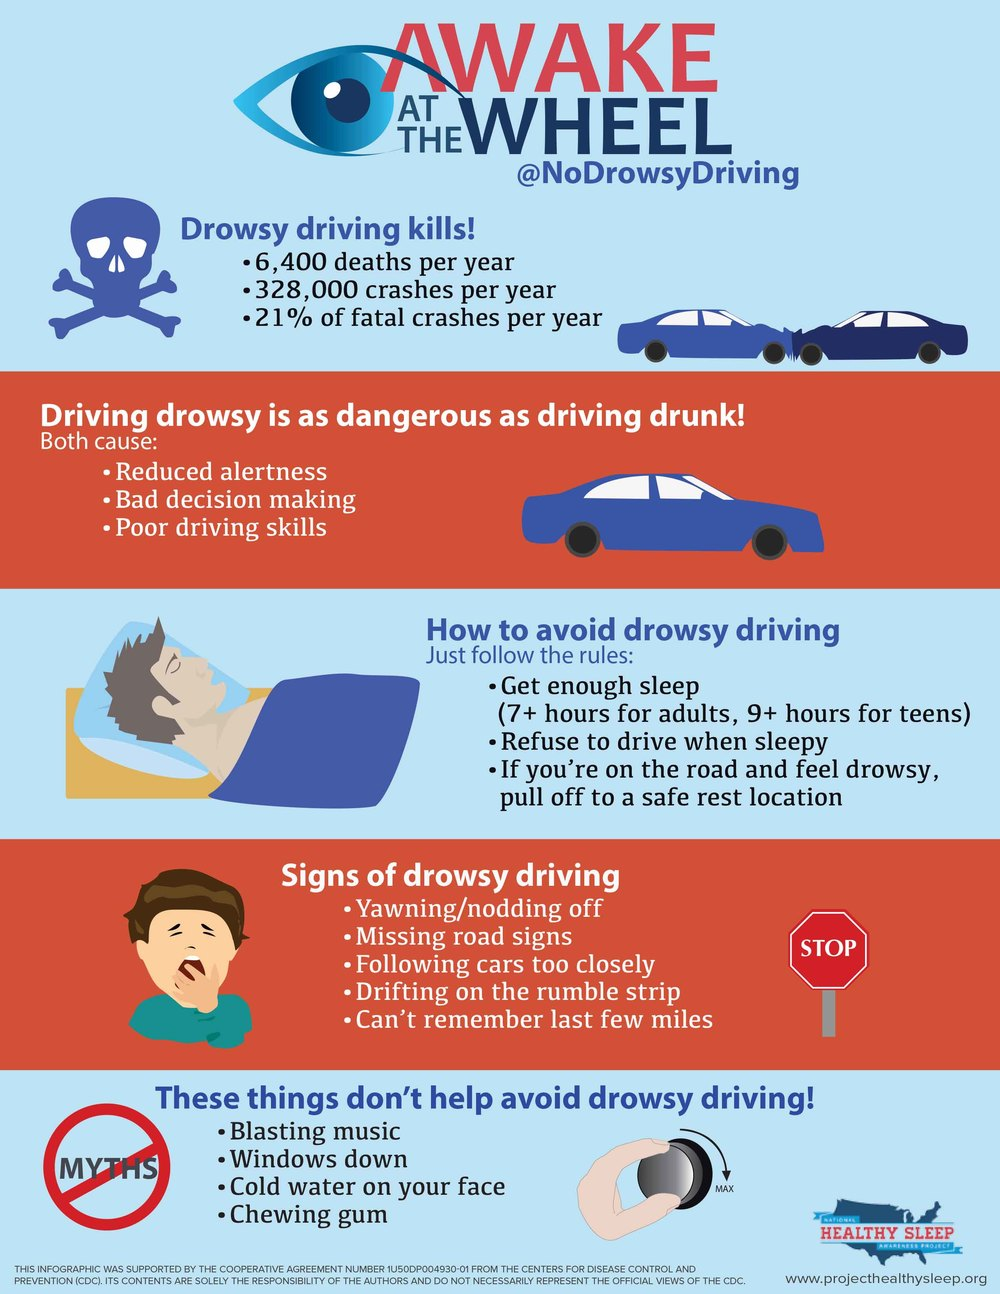 Awake @ the Wheel Drowsy Infographic 10.2015.jpg